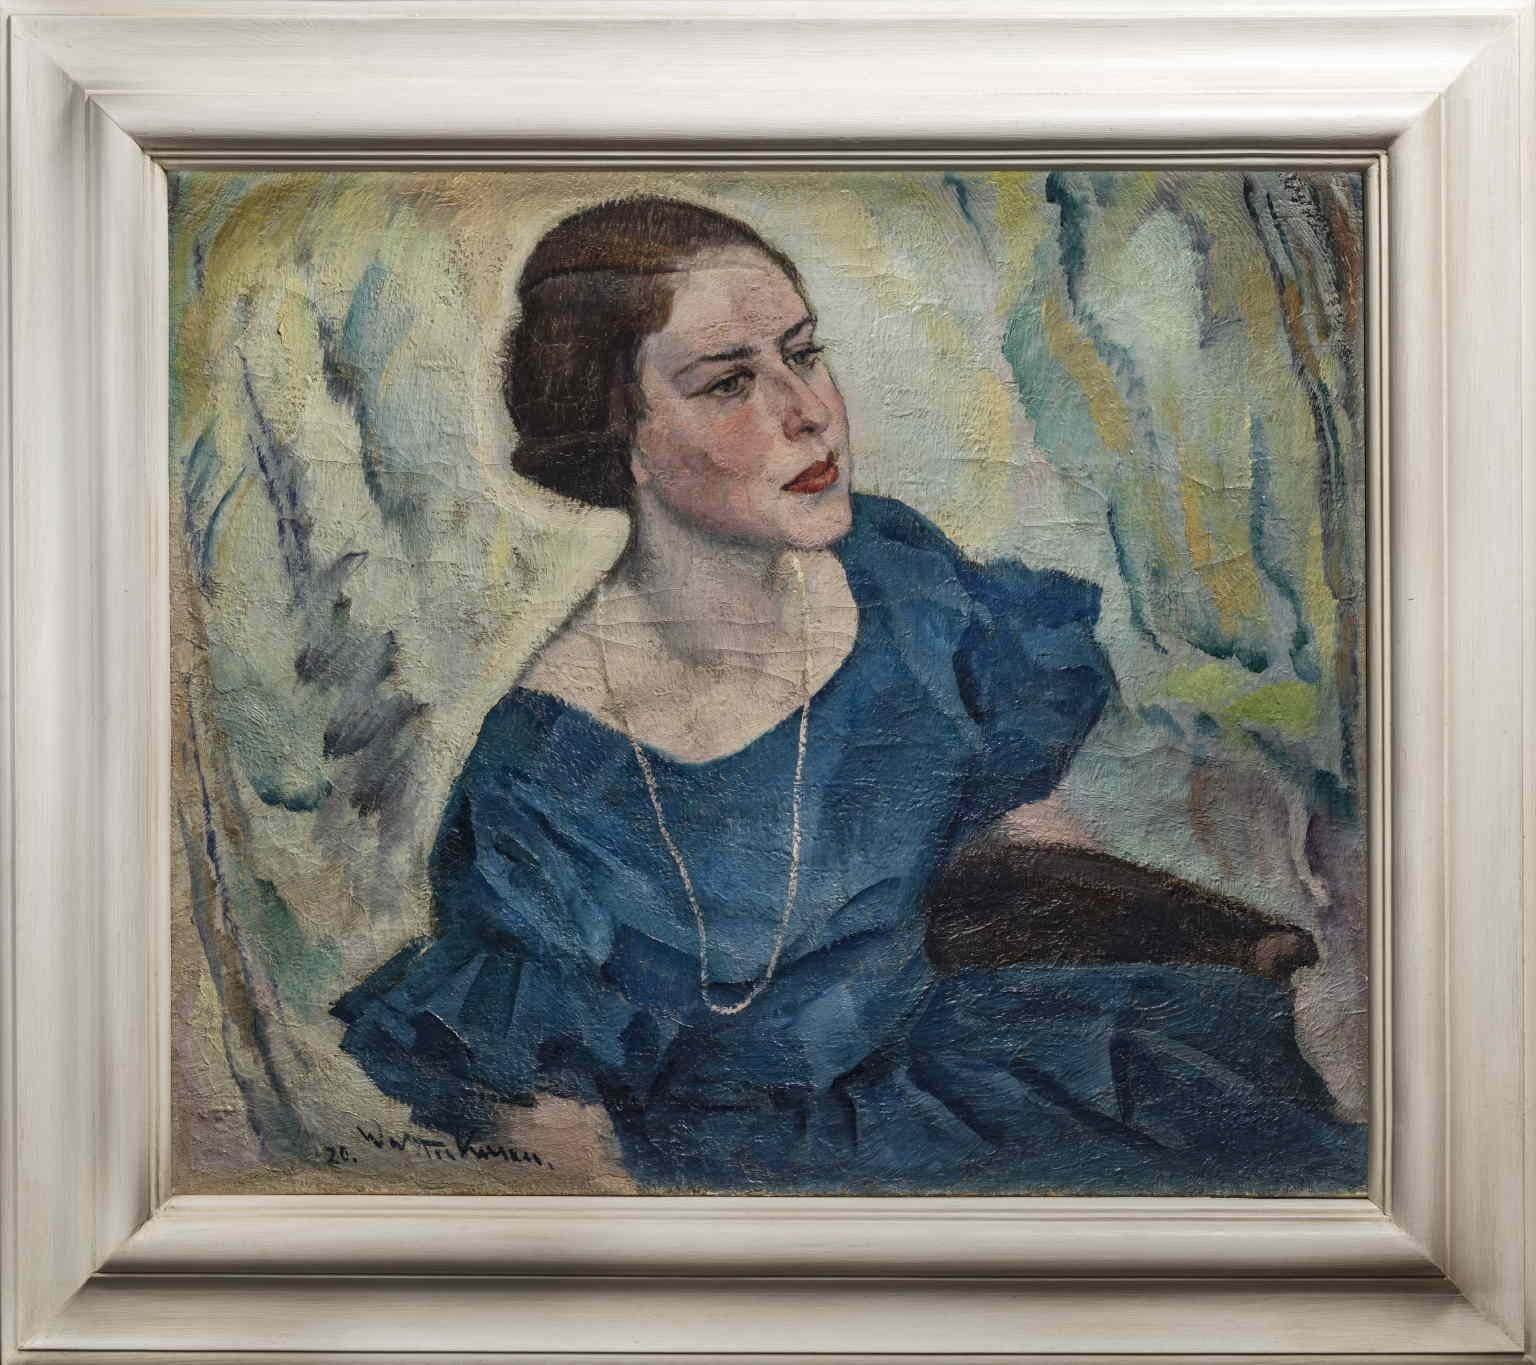 J. Walter-Kurau, Portrait of a lady, 1920, oil on canvas, signed and dated.